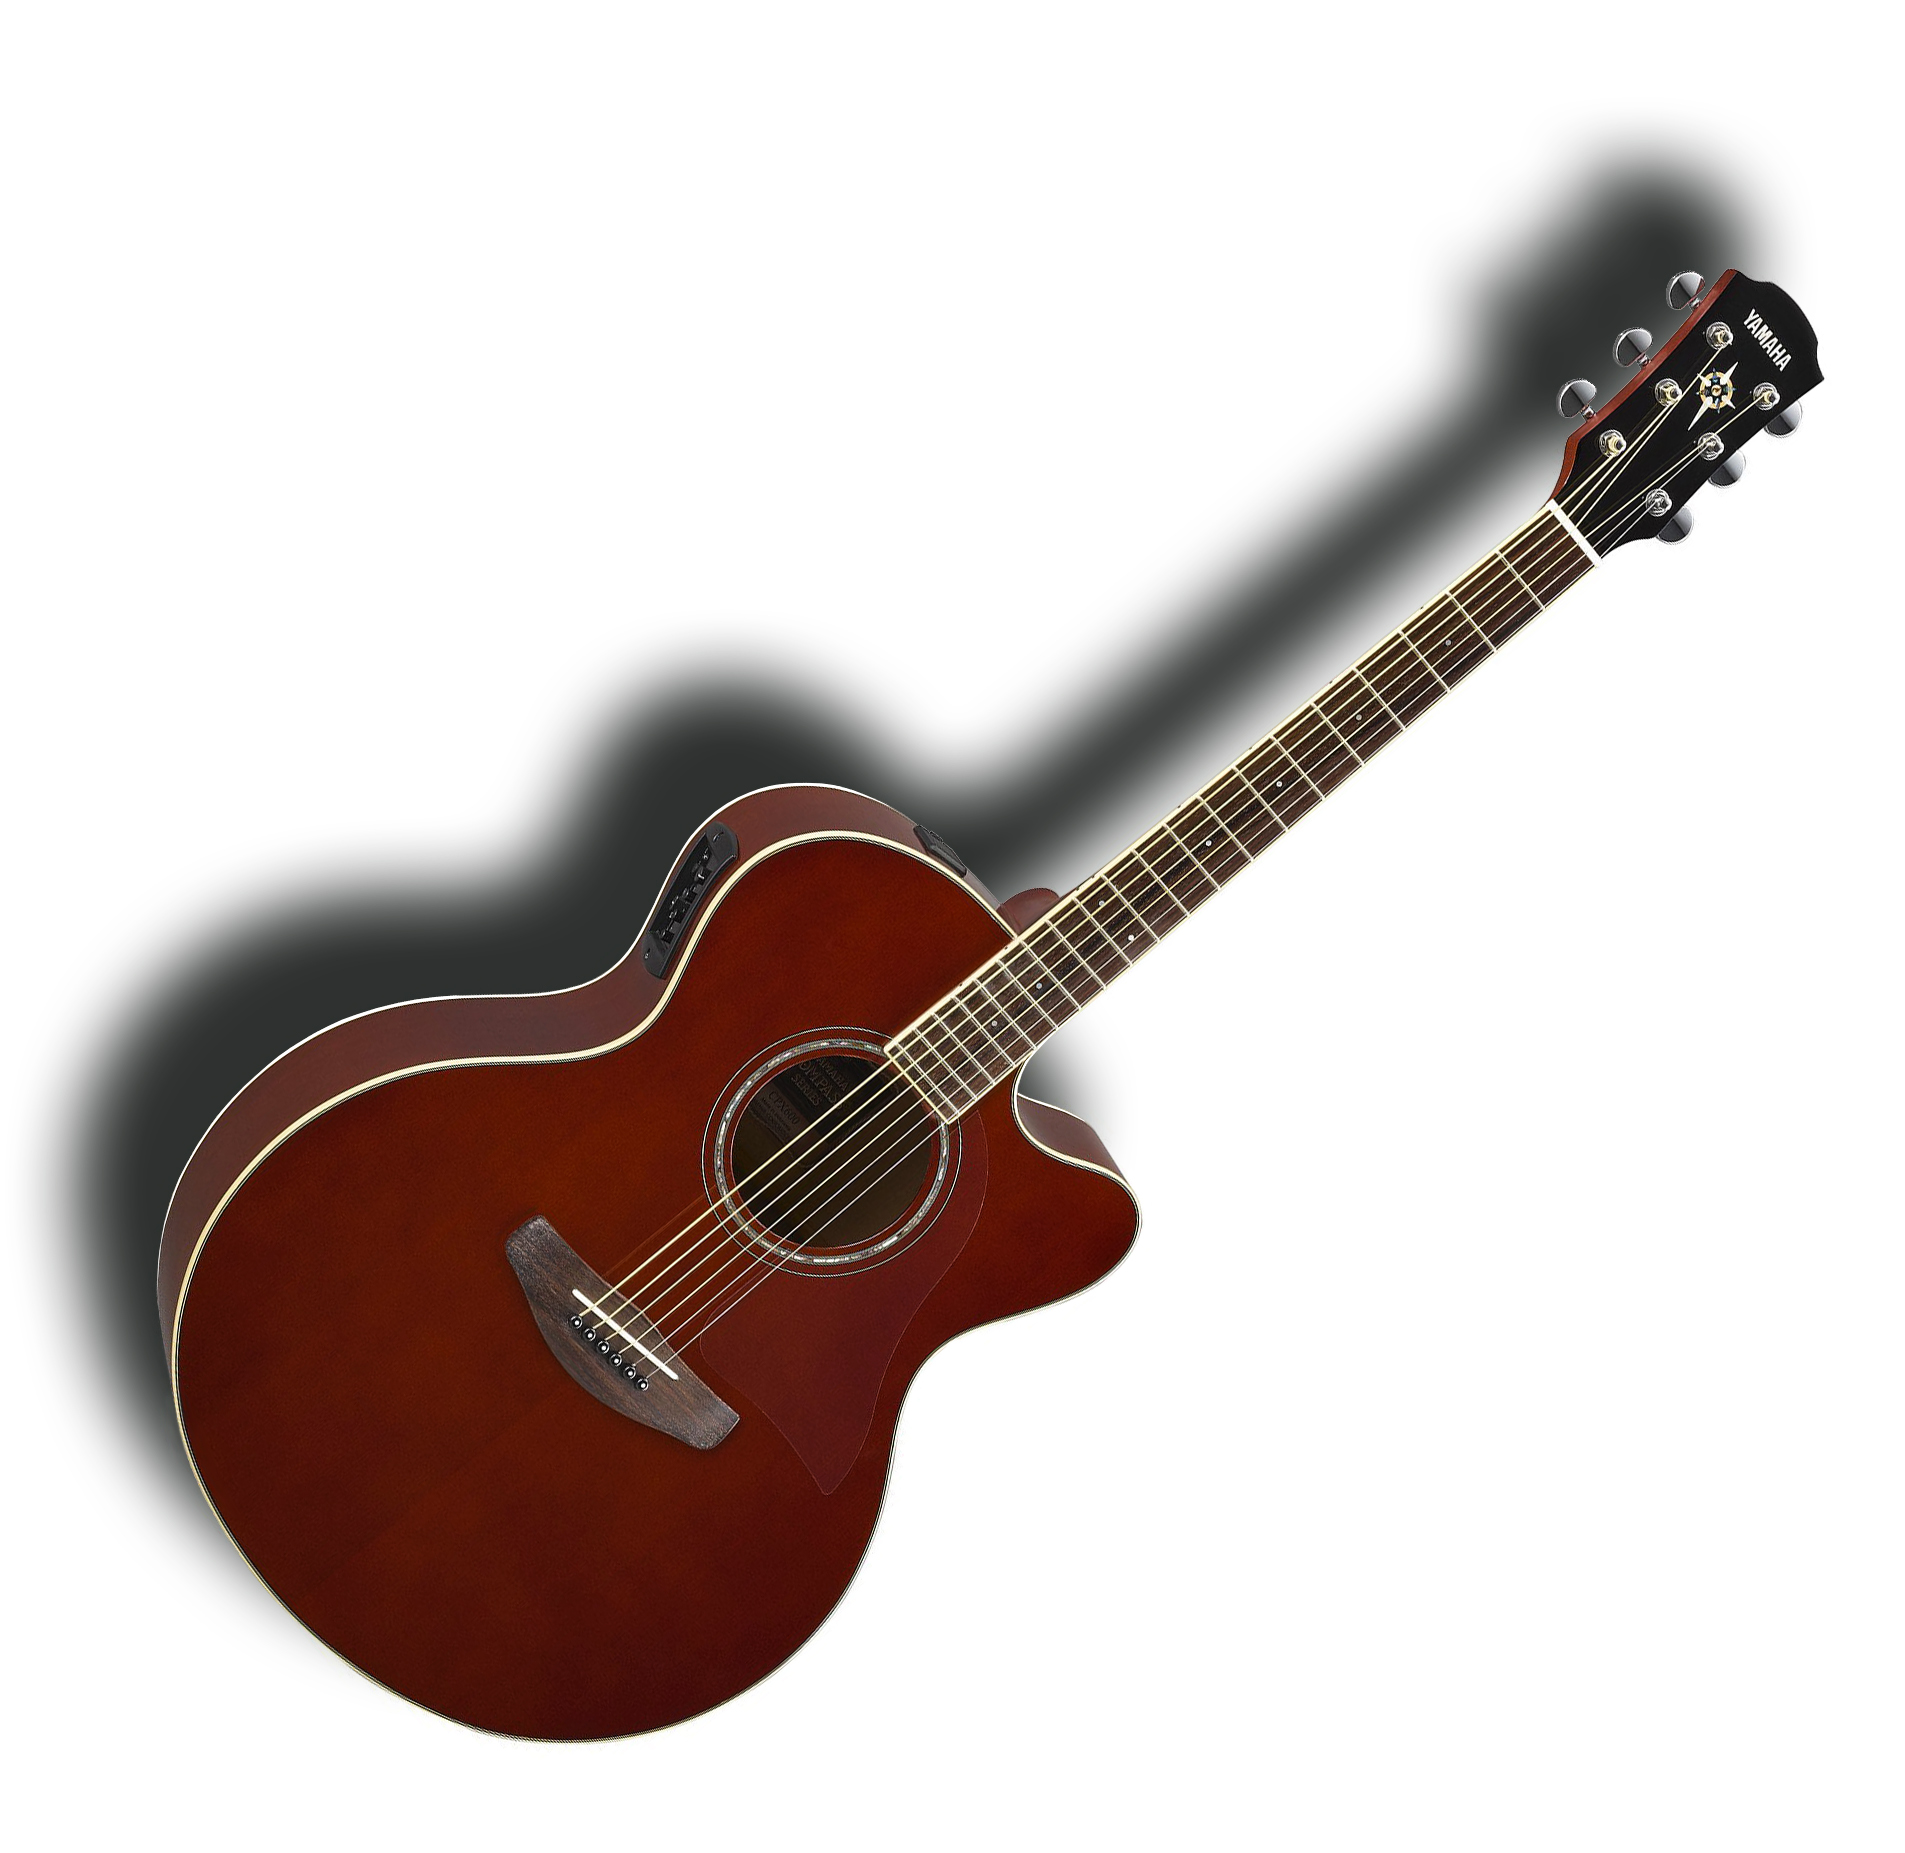 Acoustic Yamaha Yamaha Cpx600 Vt Acoustic Electric Guitar Sitka Spruce Top Root Beer Finish Pro Scm Setup